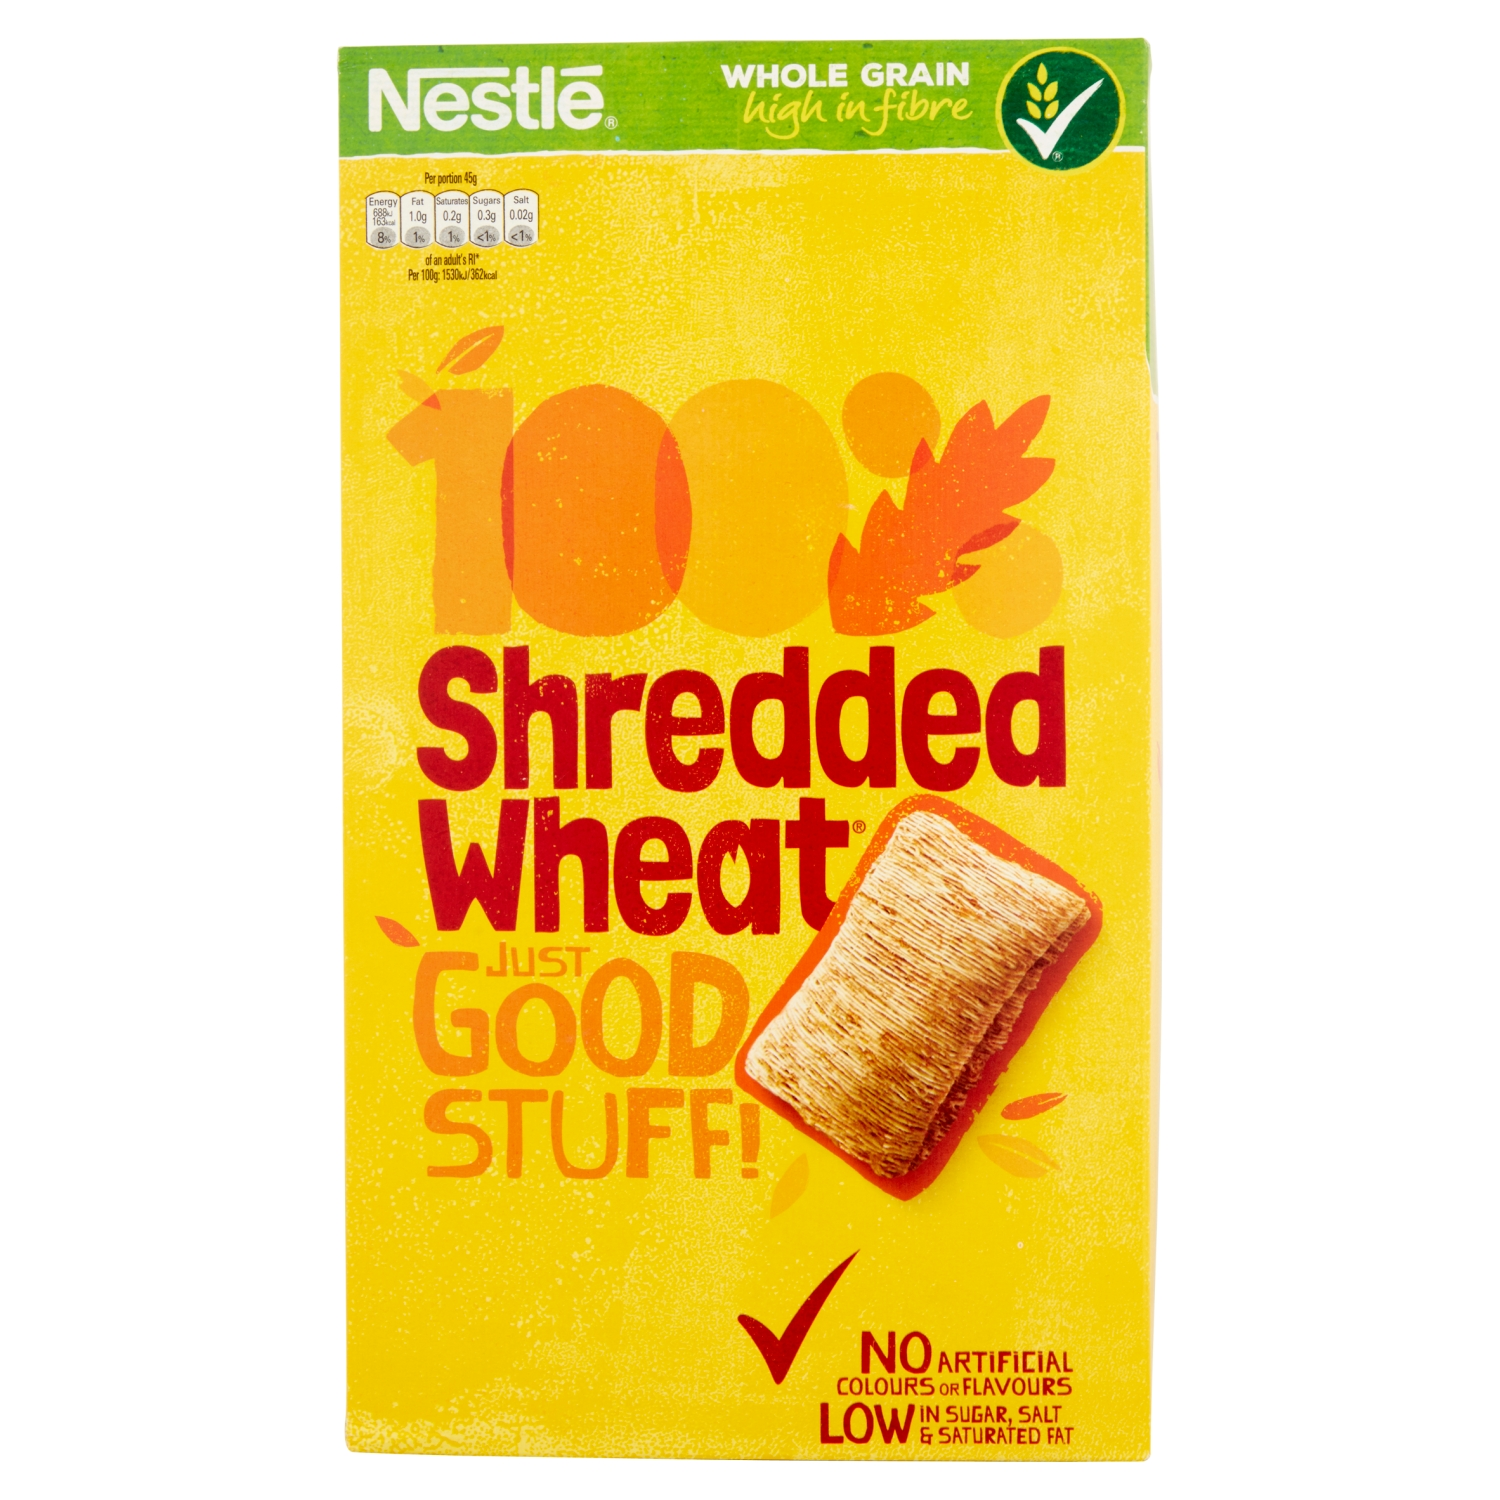 Nestlé 100% Shredded Wheat 30 Biscuits